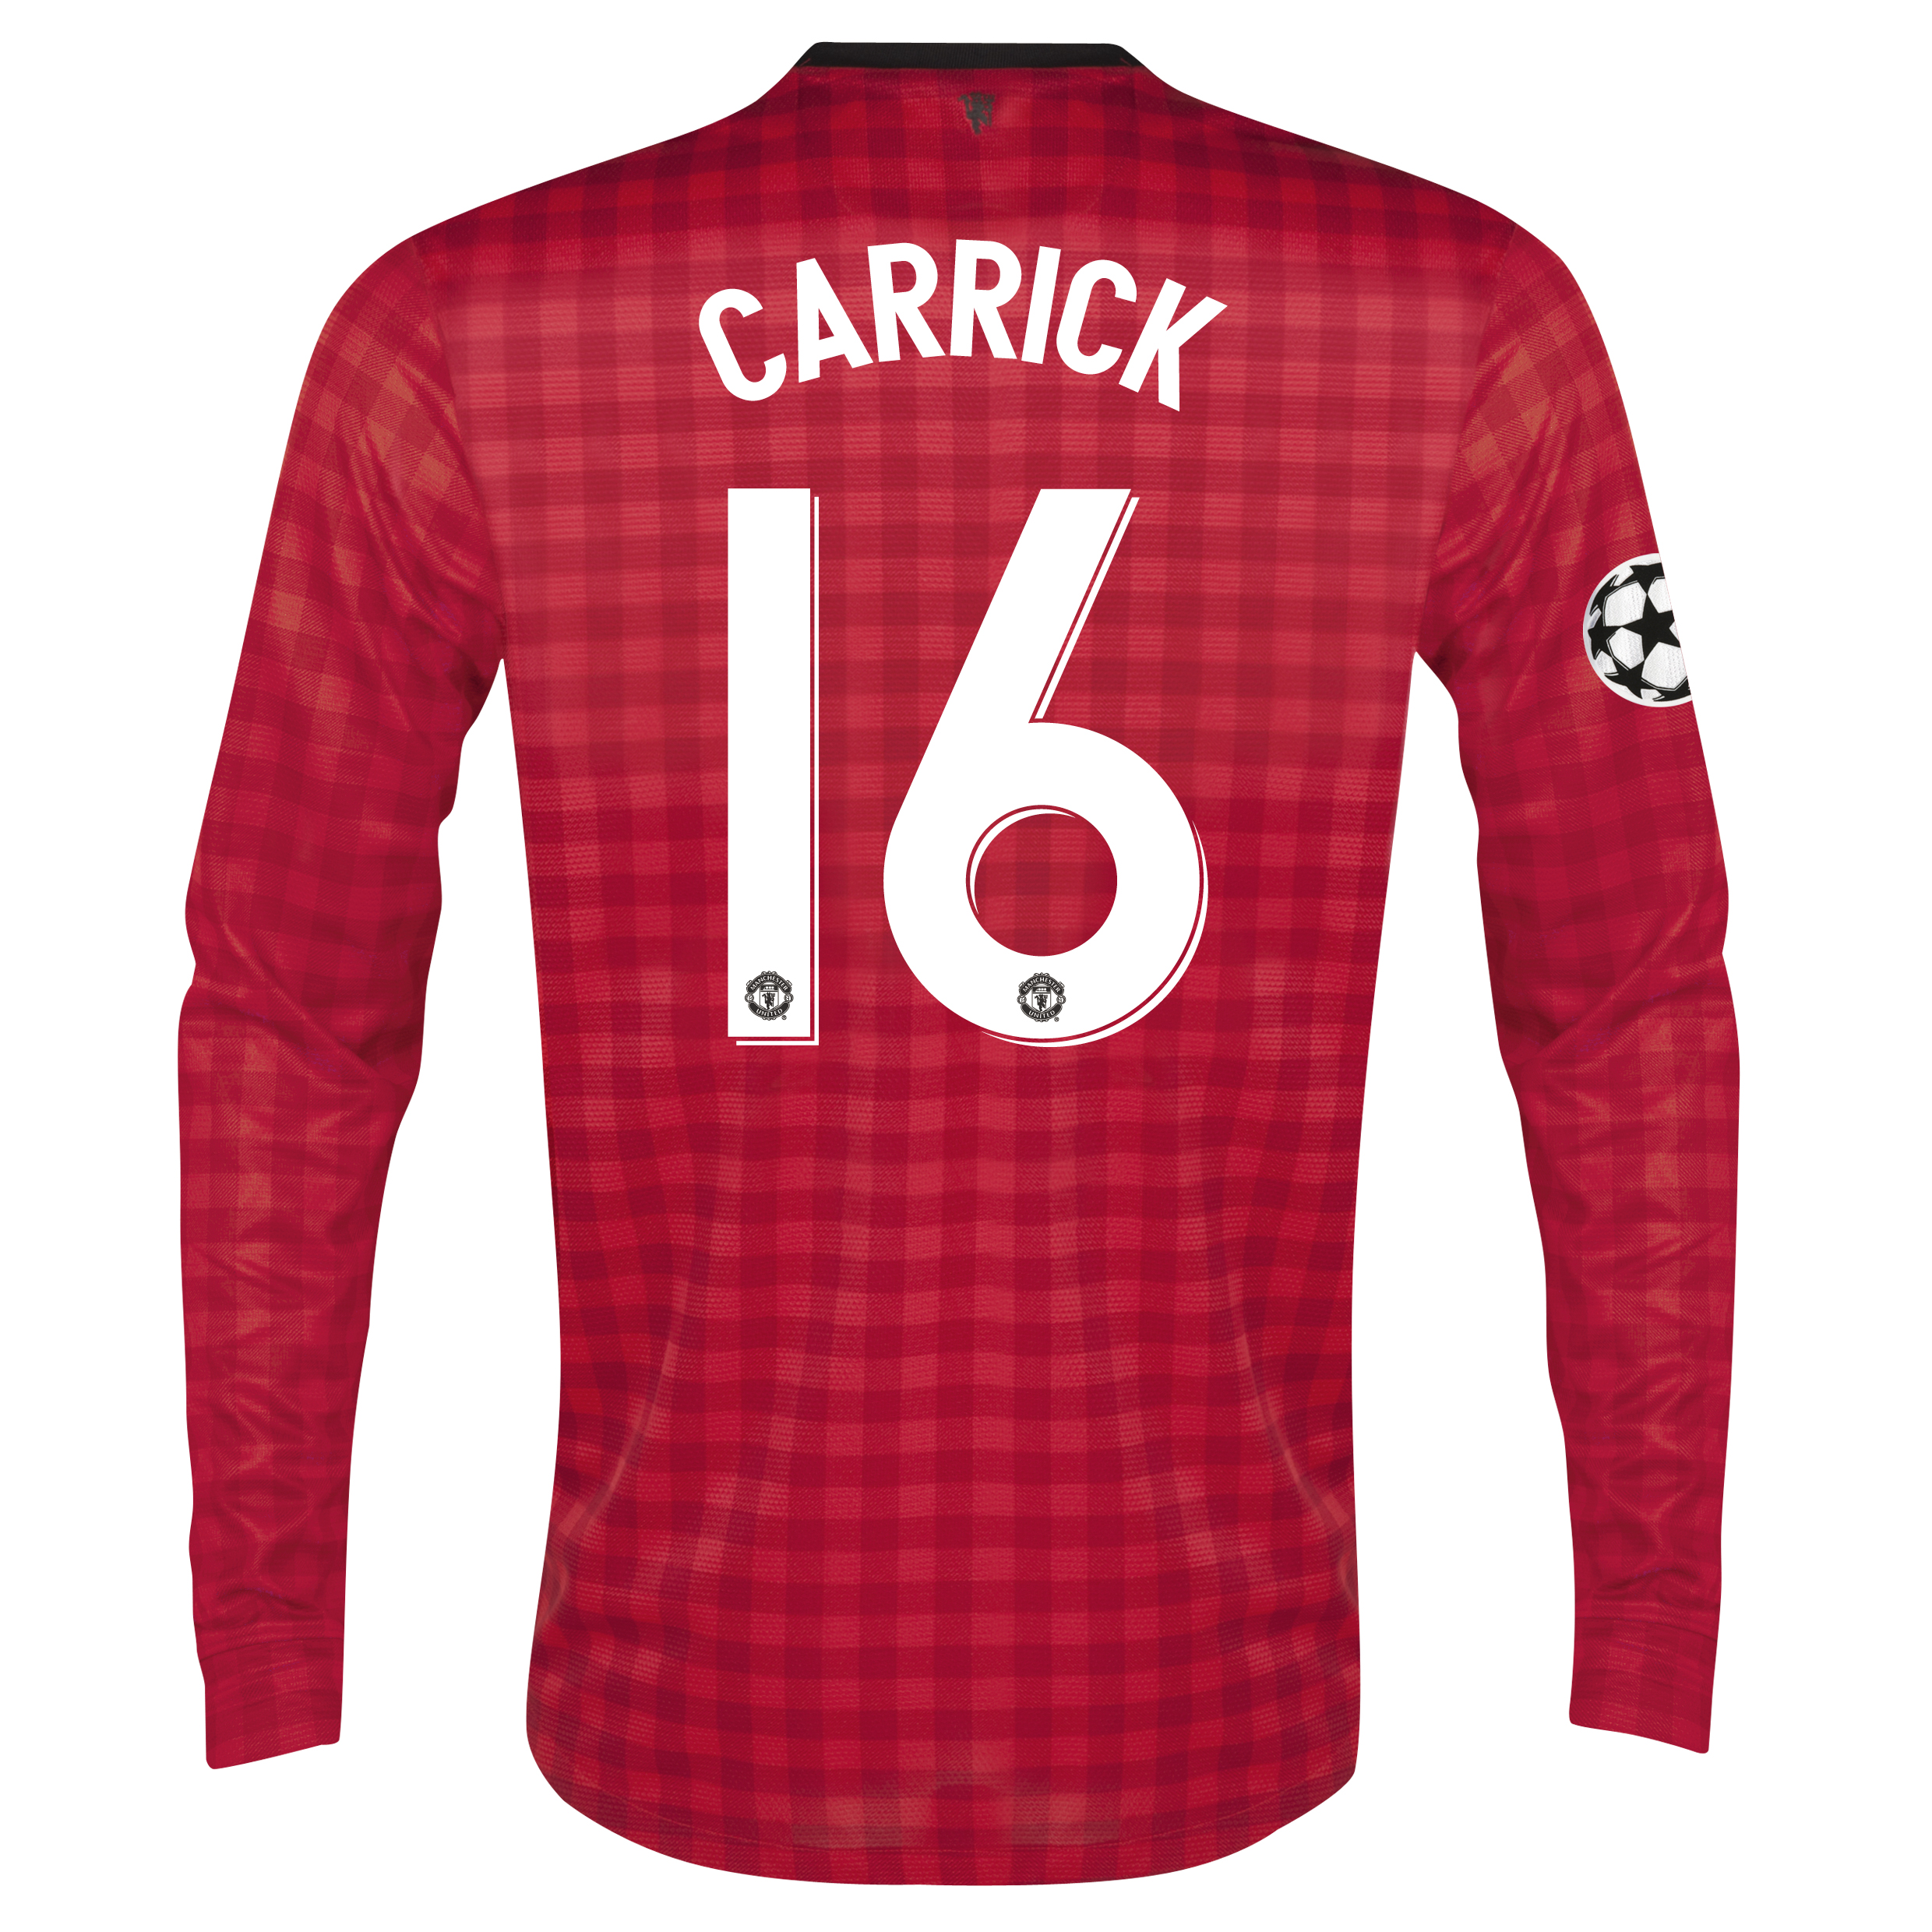 Man United UEFA Champions League Home Shirt 2012/13 - Long Sleeved with Carrick 16 printing